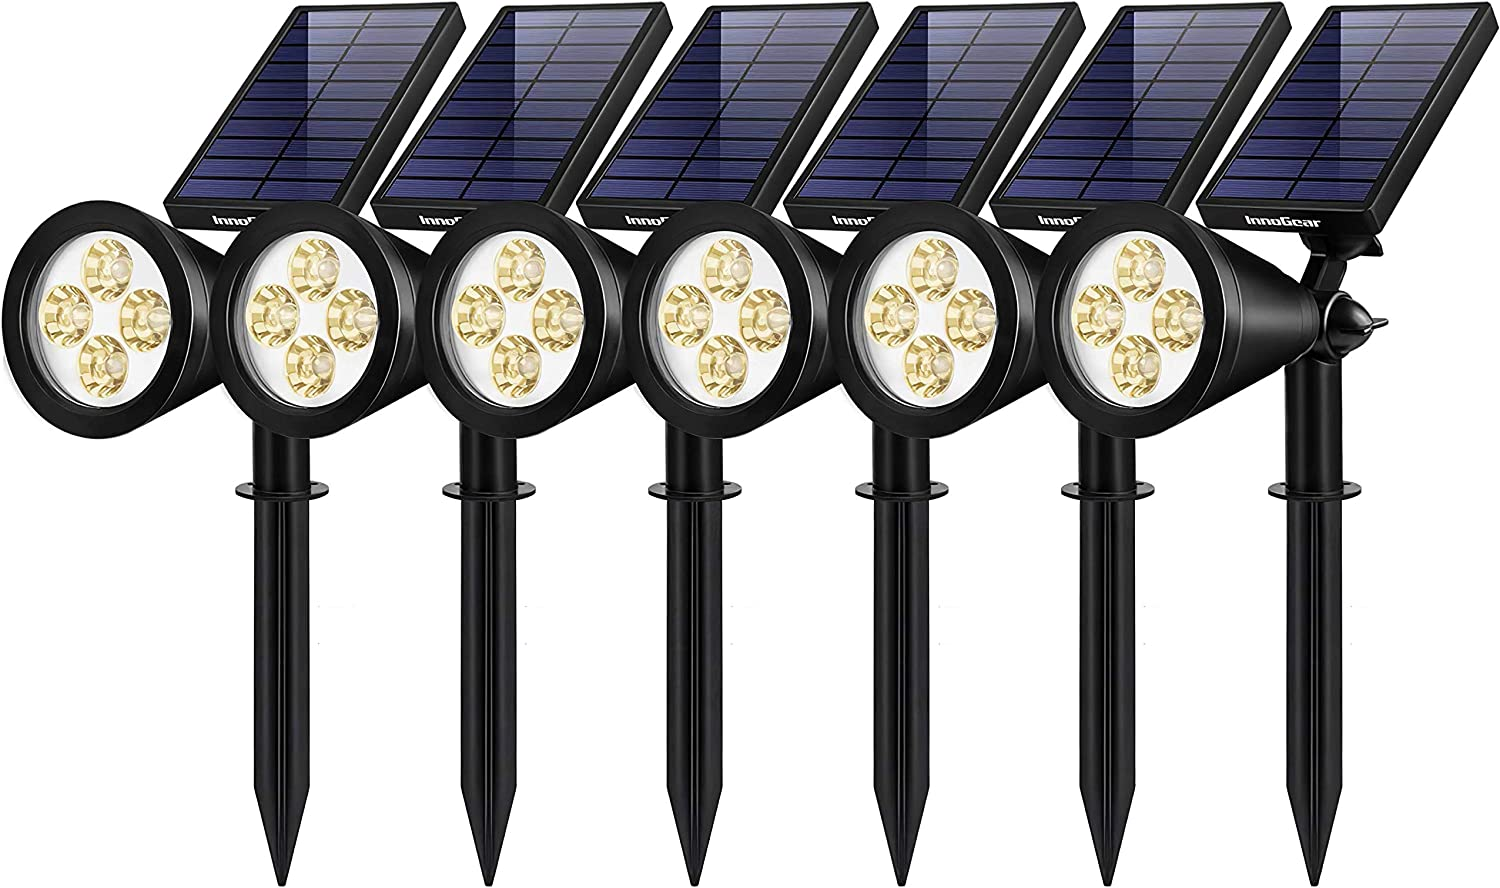 InnoGear Solar Lights Outdoor, Upgraded Waterproof Solar Powered Landscape Spotlights 2-in-1 Wall Light Decorative Lighting Auto On/Off for Pathway Garden Patio Yard Driveway Pool, Pack of 6 (Warm)